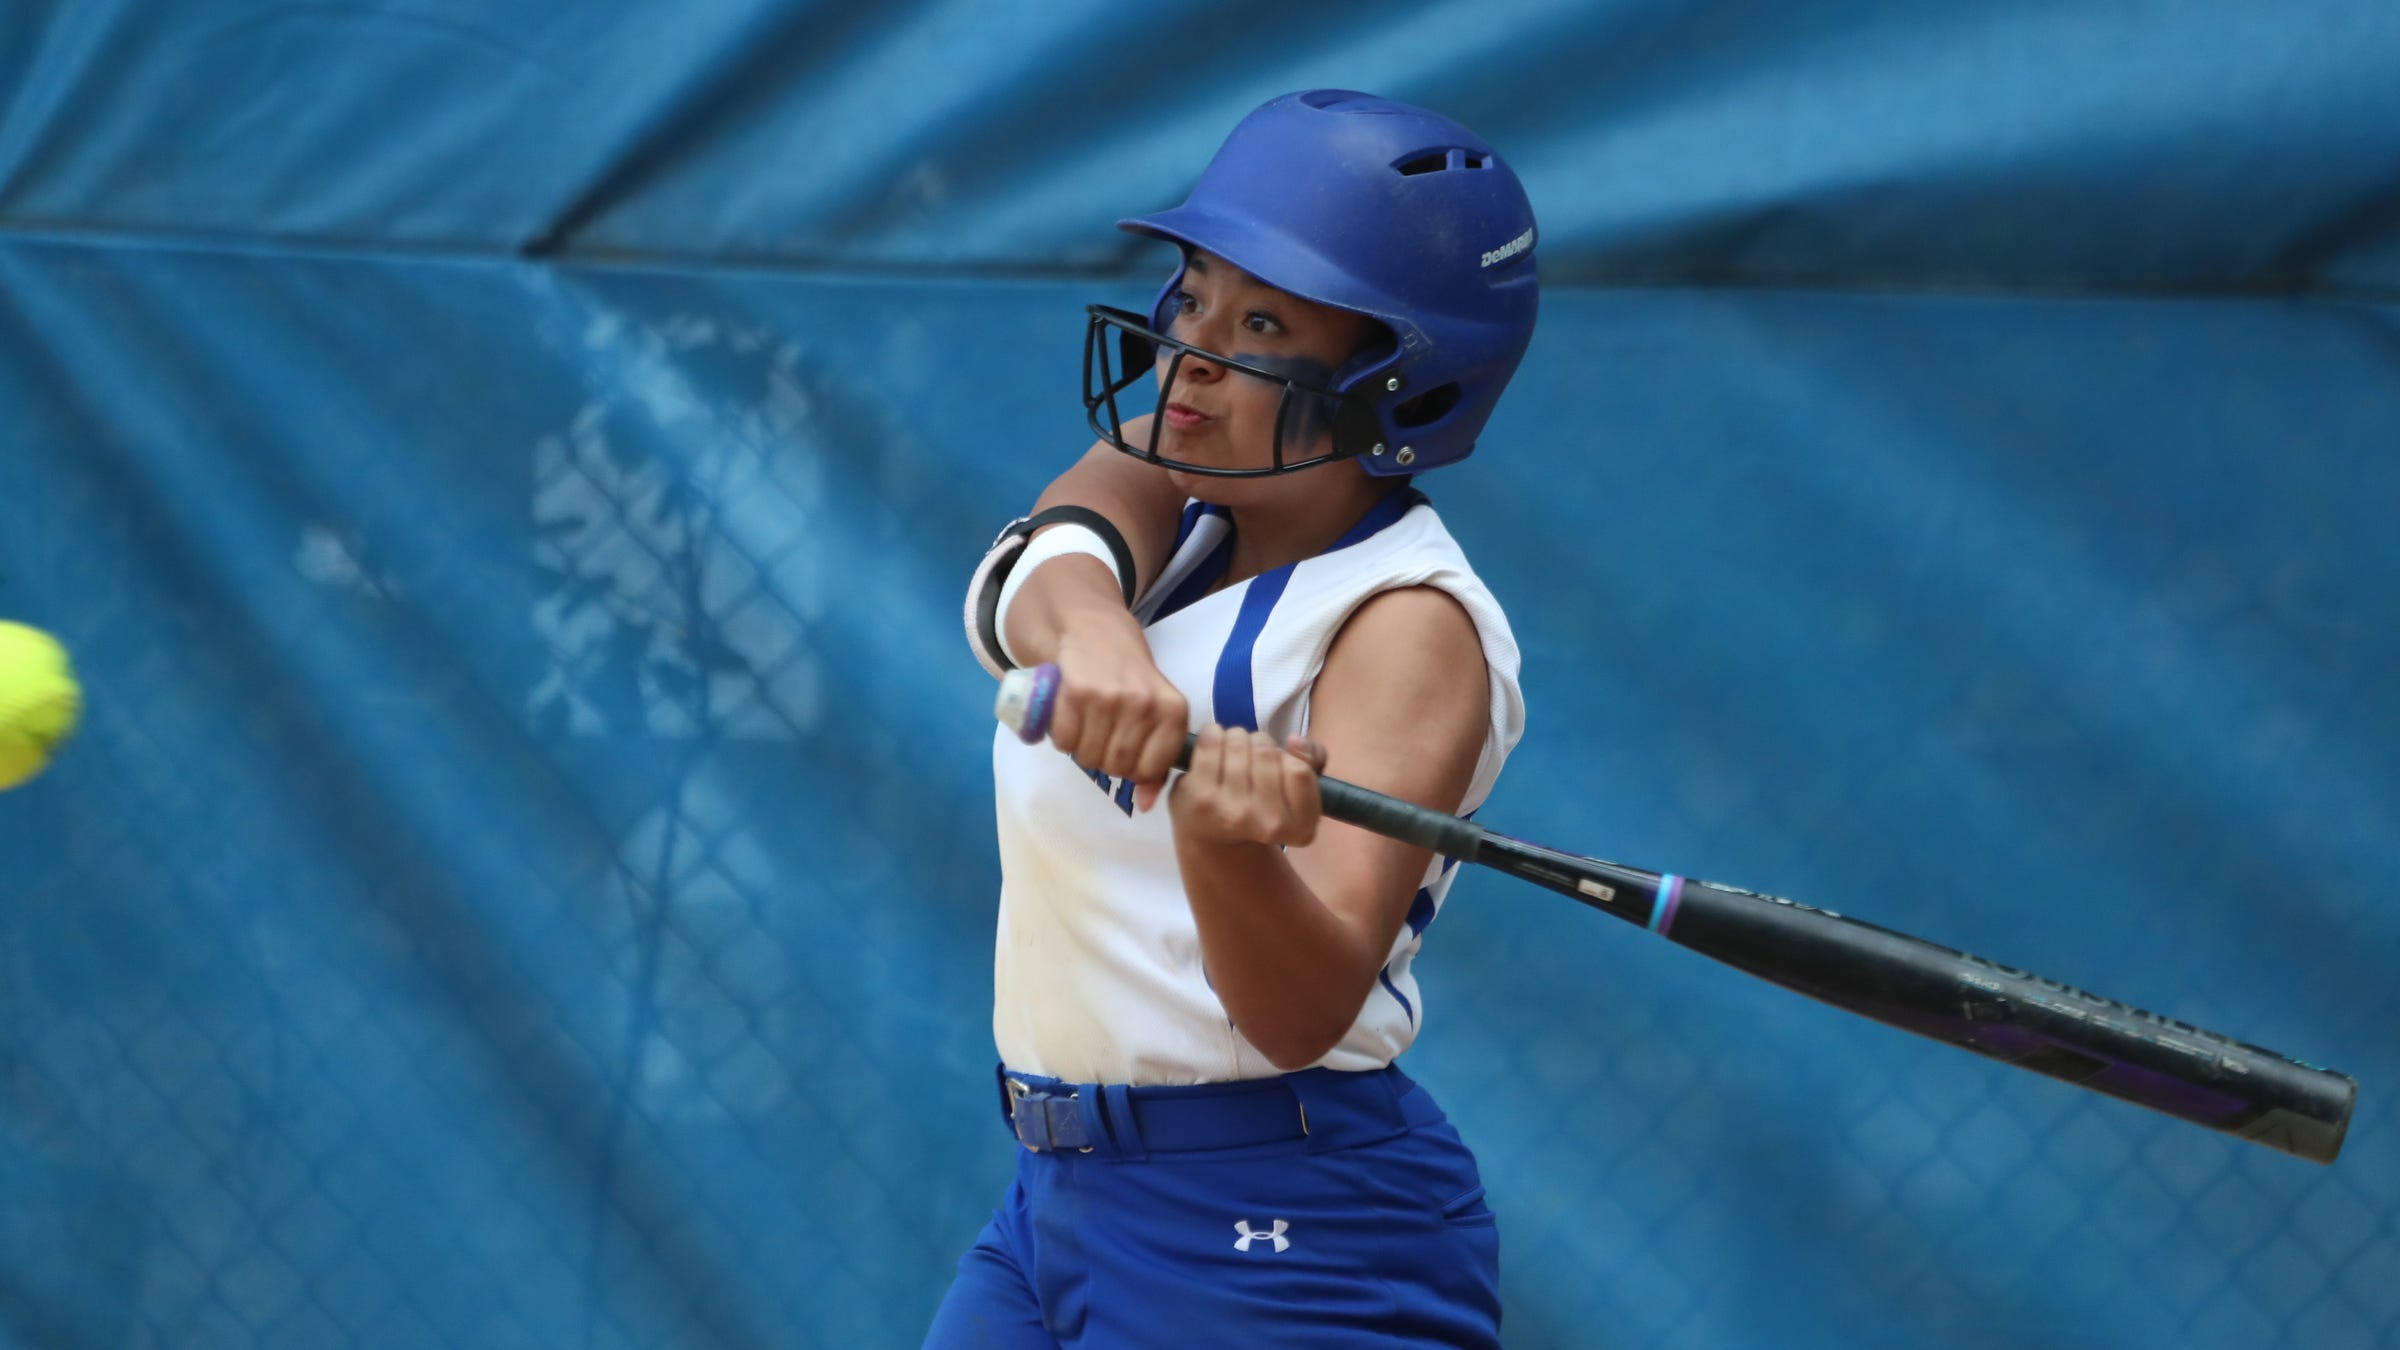 Softball: Vote now for the lohud Player of the Week (May 17-23)